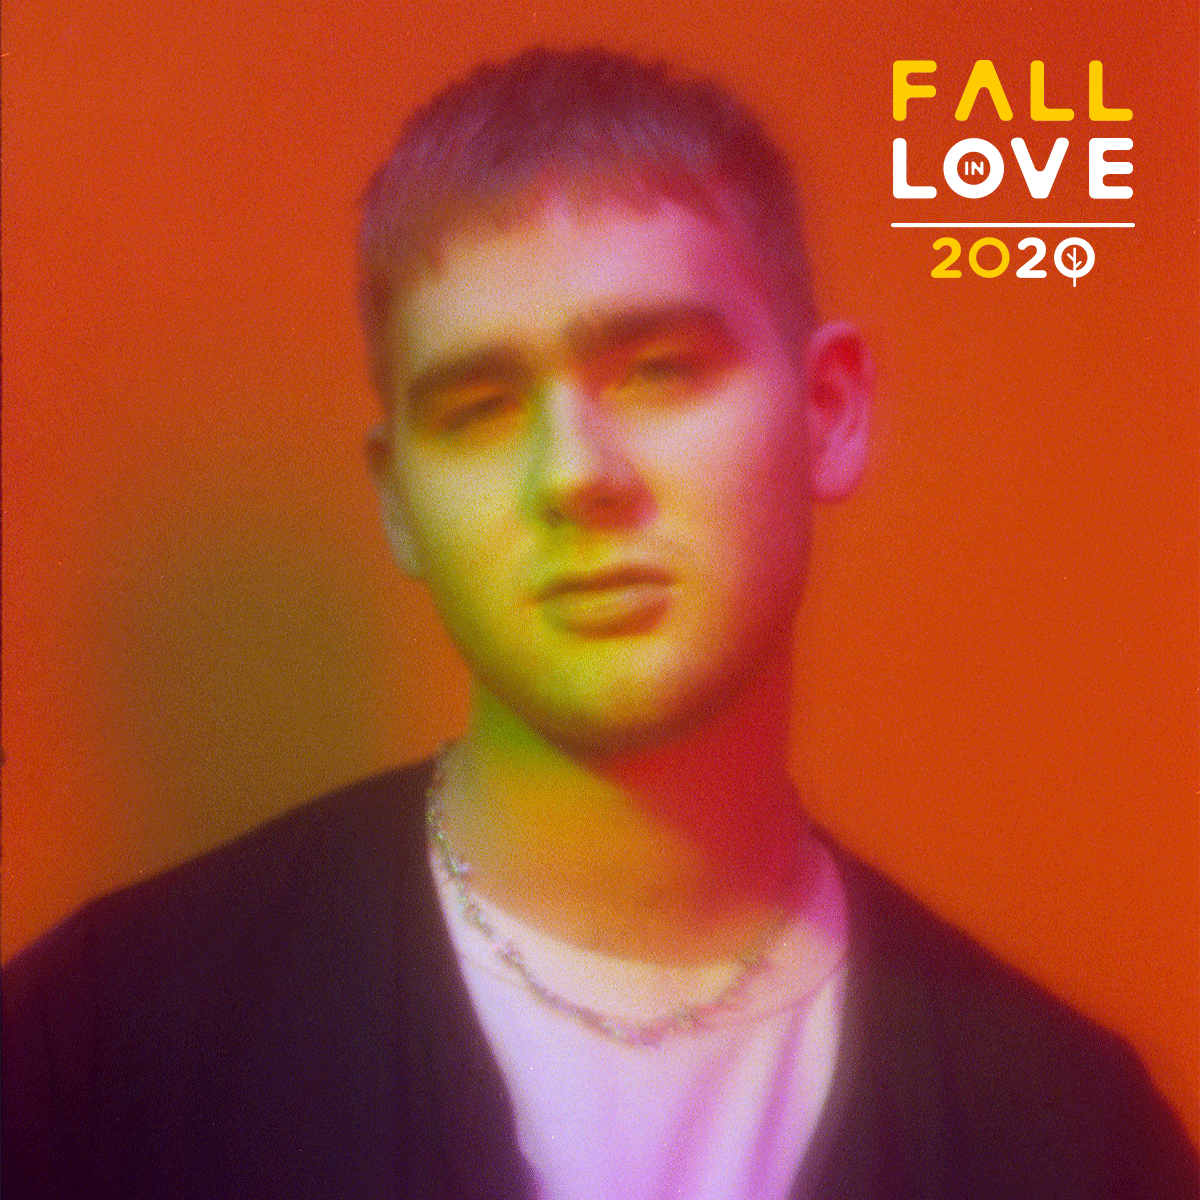 Fall in Love Festival 2020